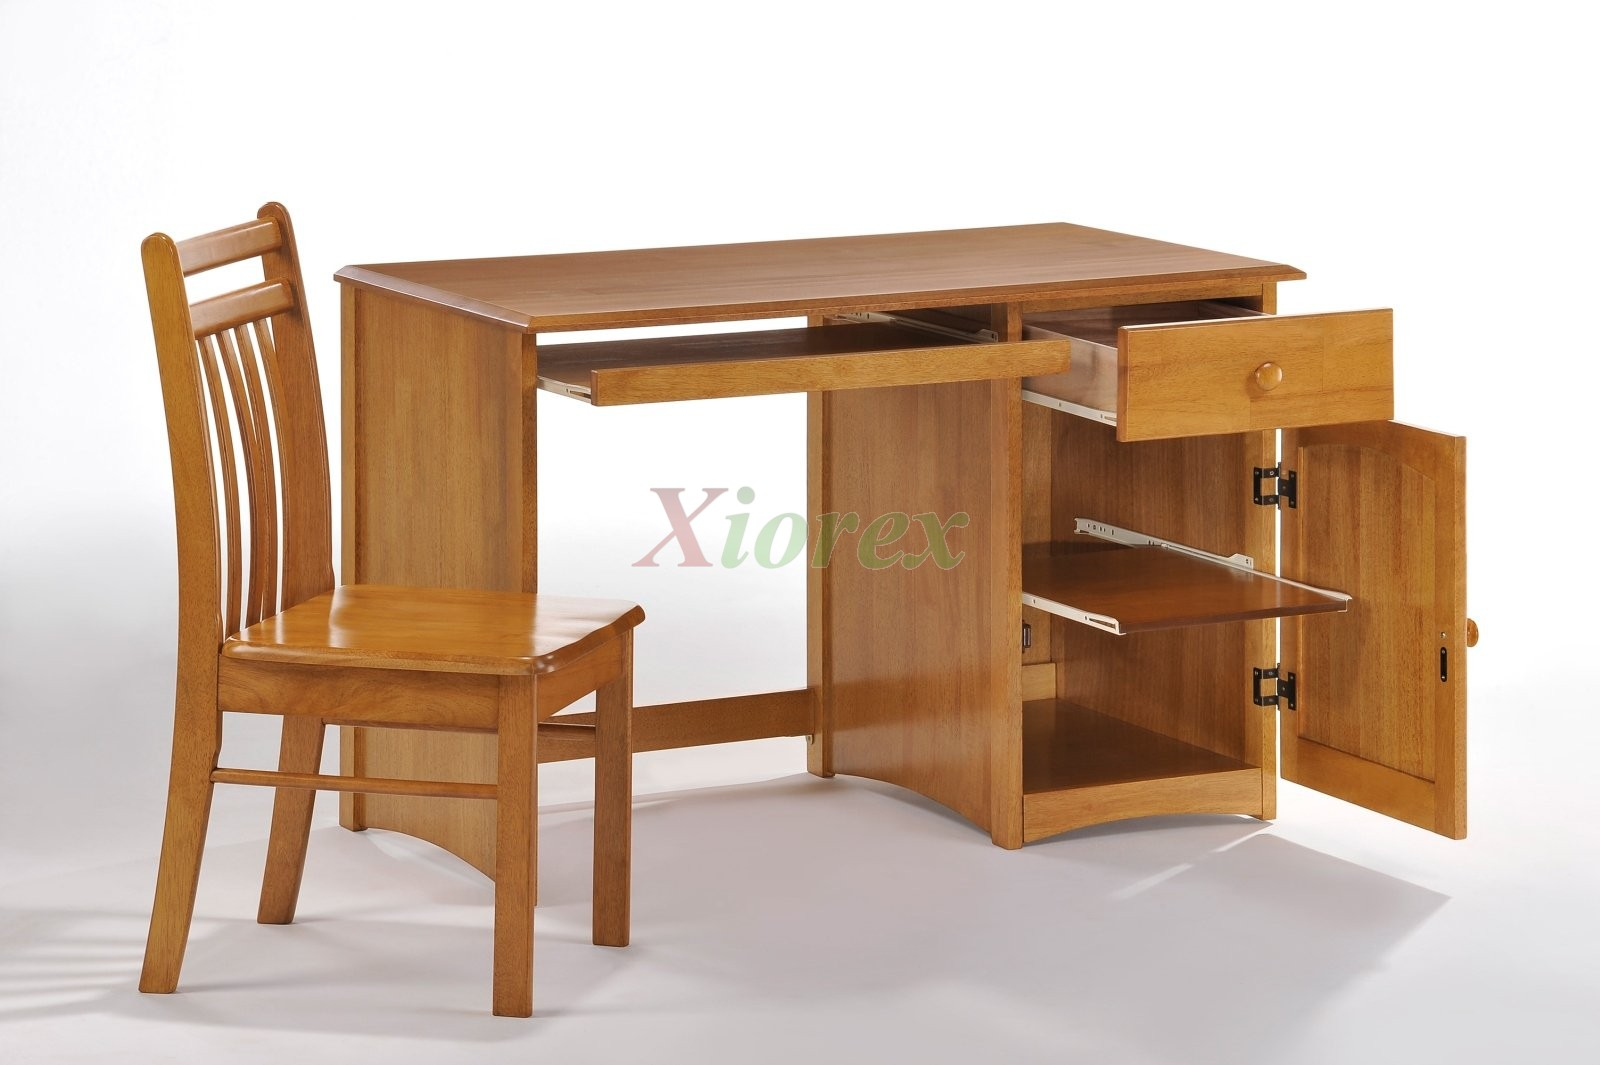 Clove Student Desk Open Chair Medium Oak For Es Bed Sets Xiorex